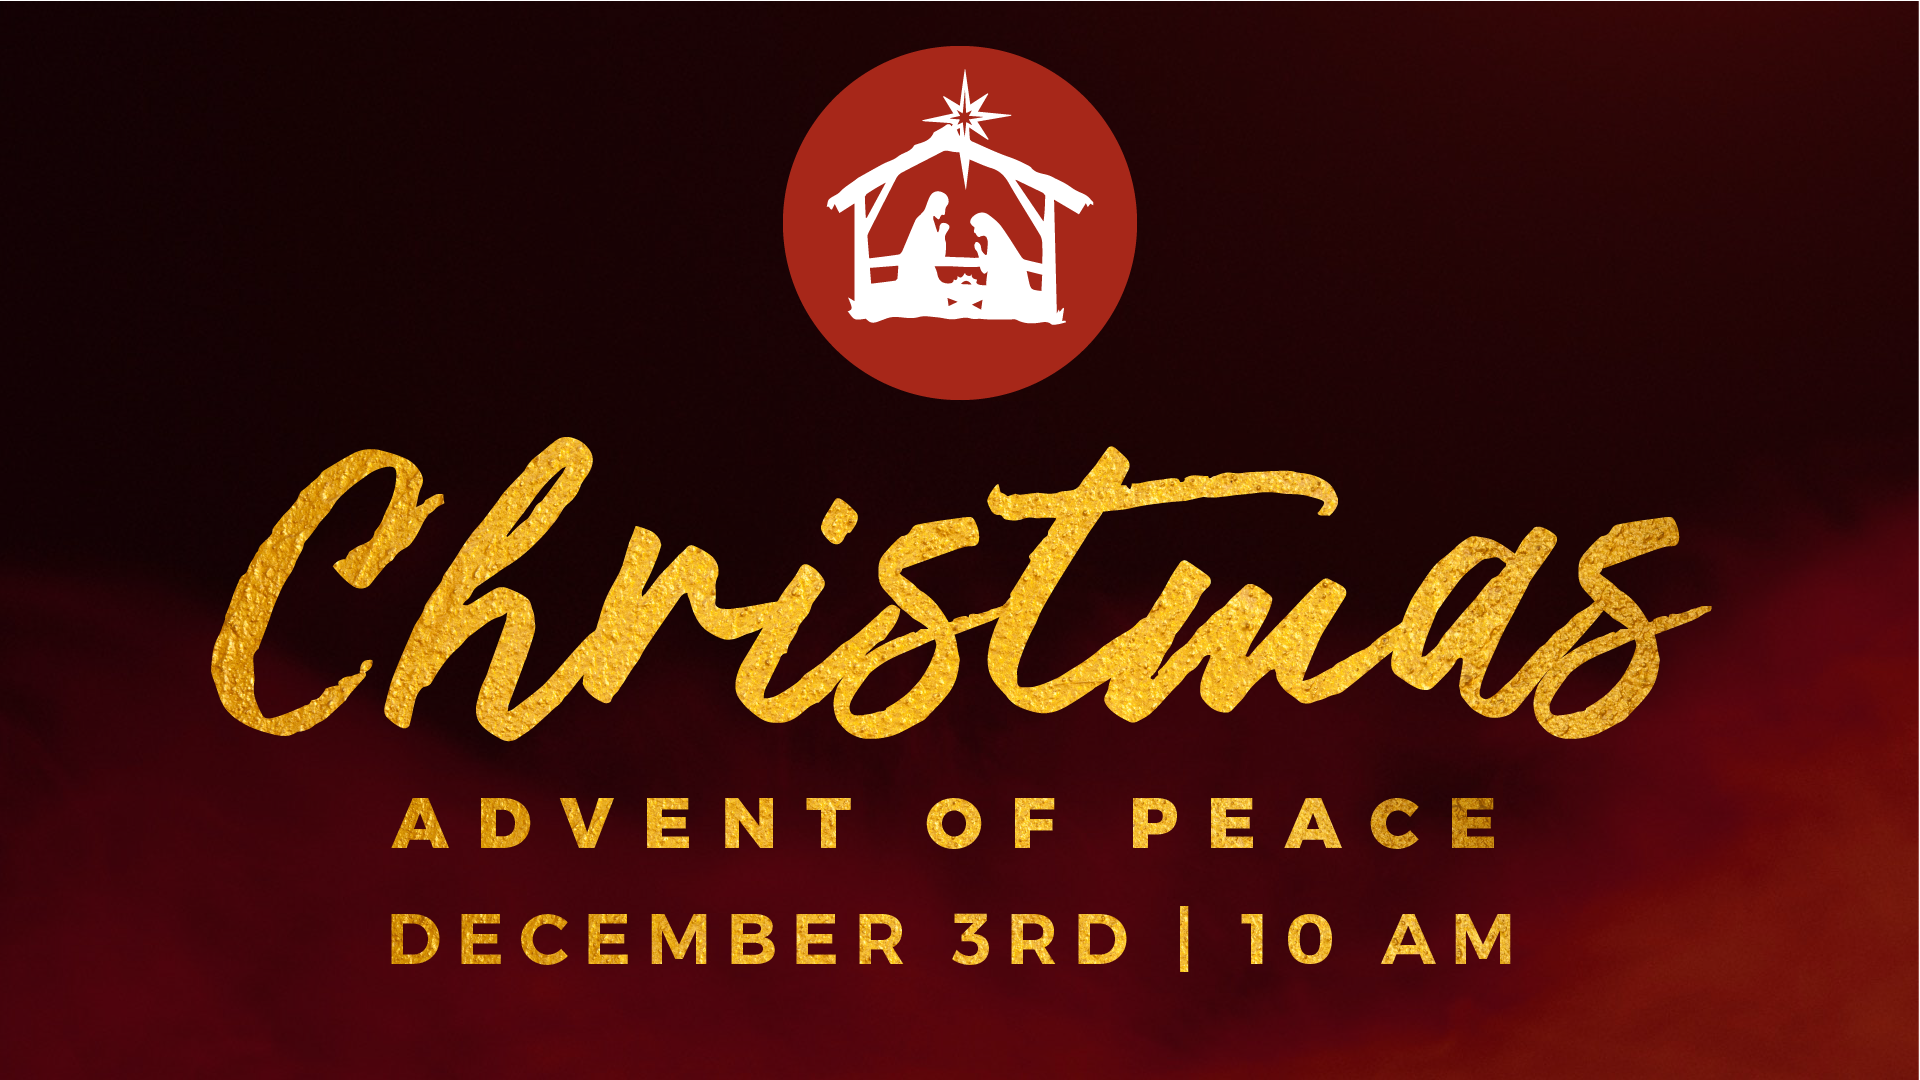 Advent of Peace - Christmas Series December 3